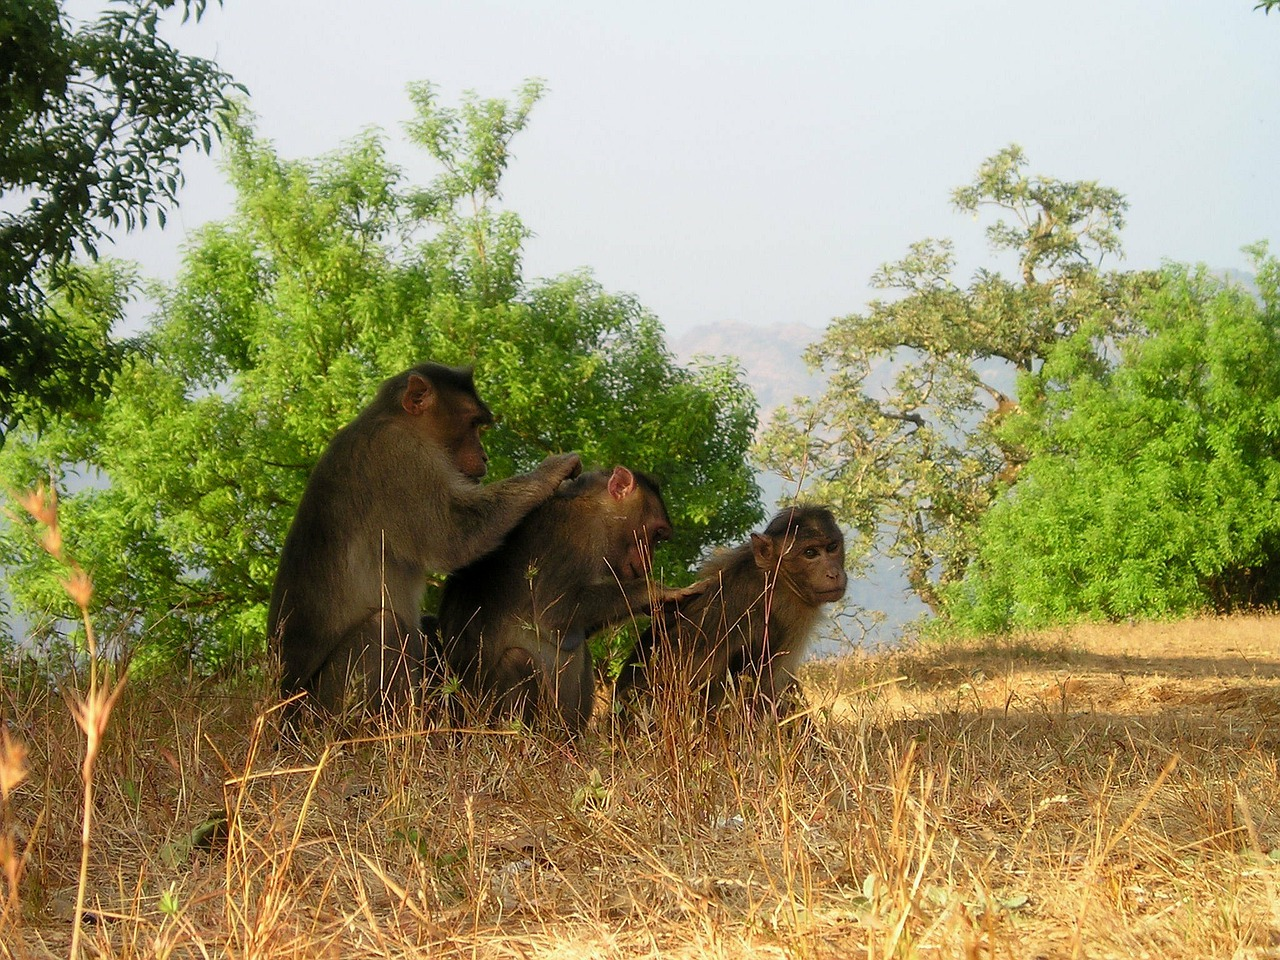 berber monkeys ape delouse free picture